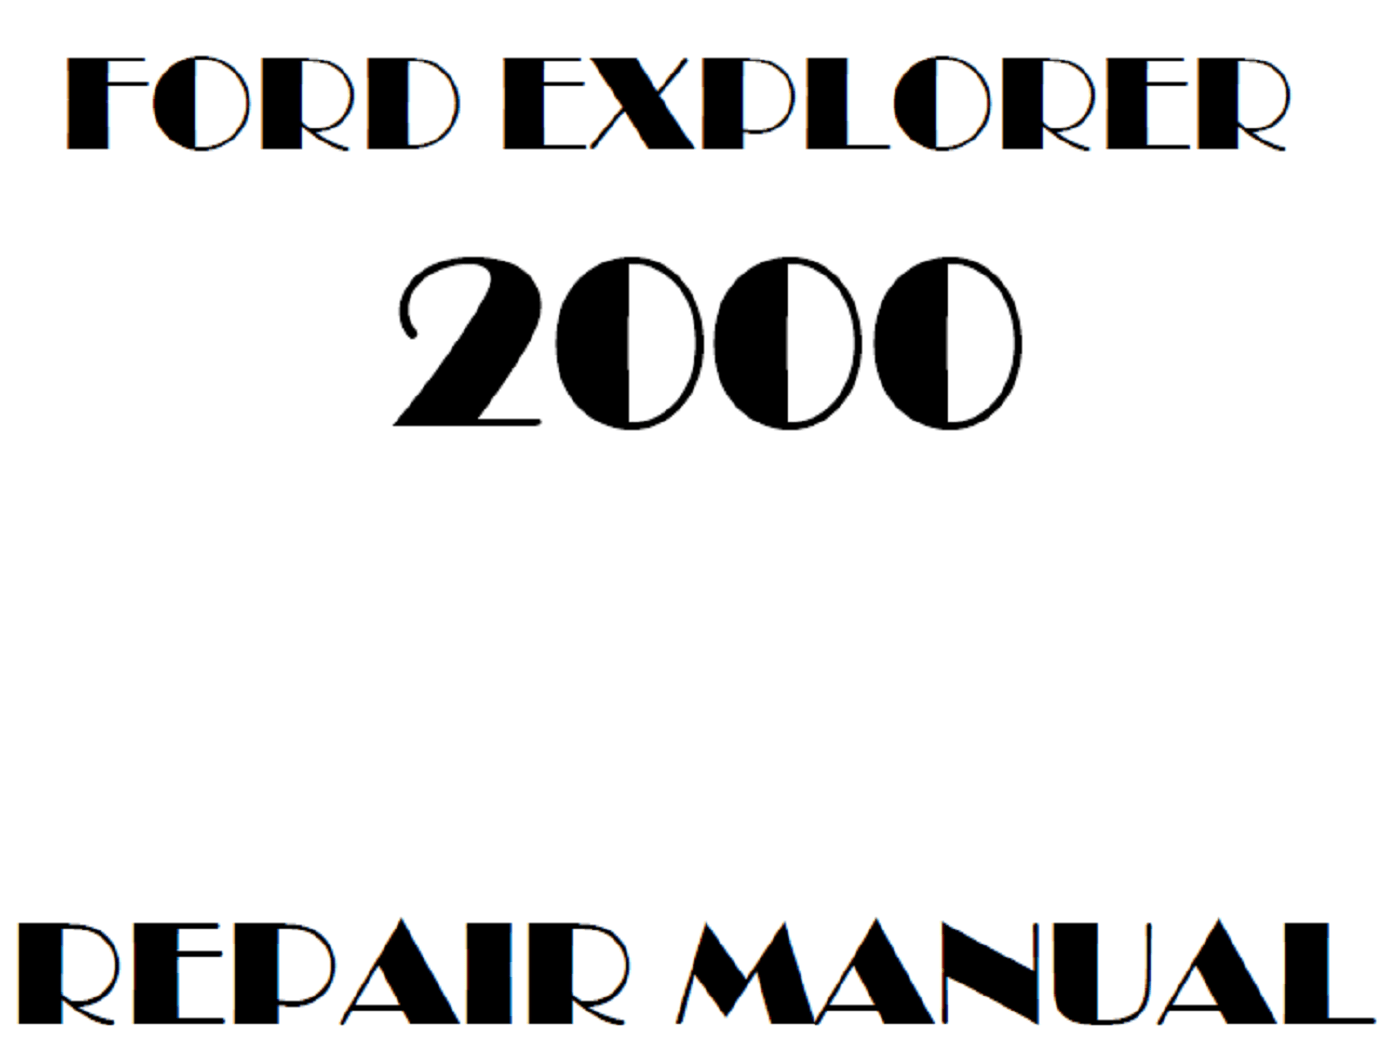 2000 Ford Explorer repair manual